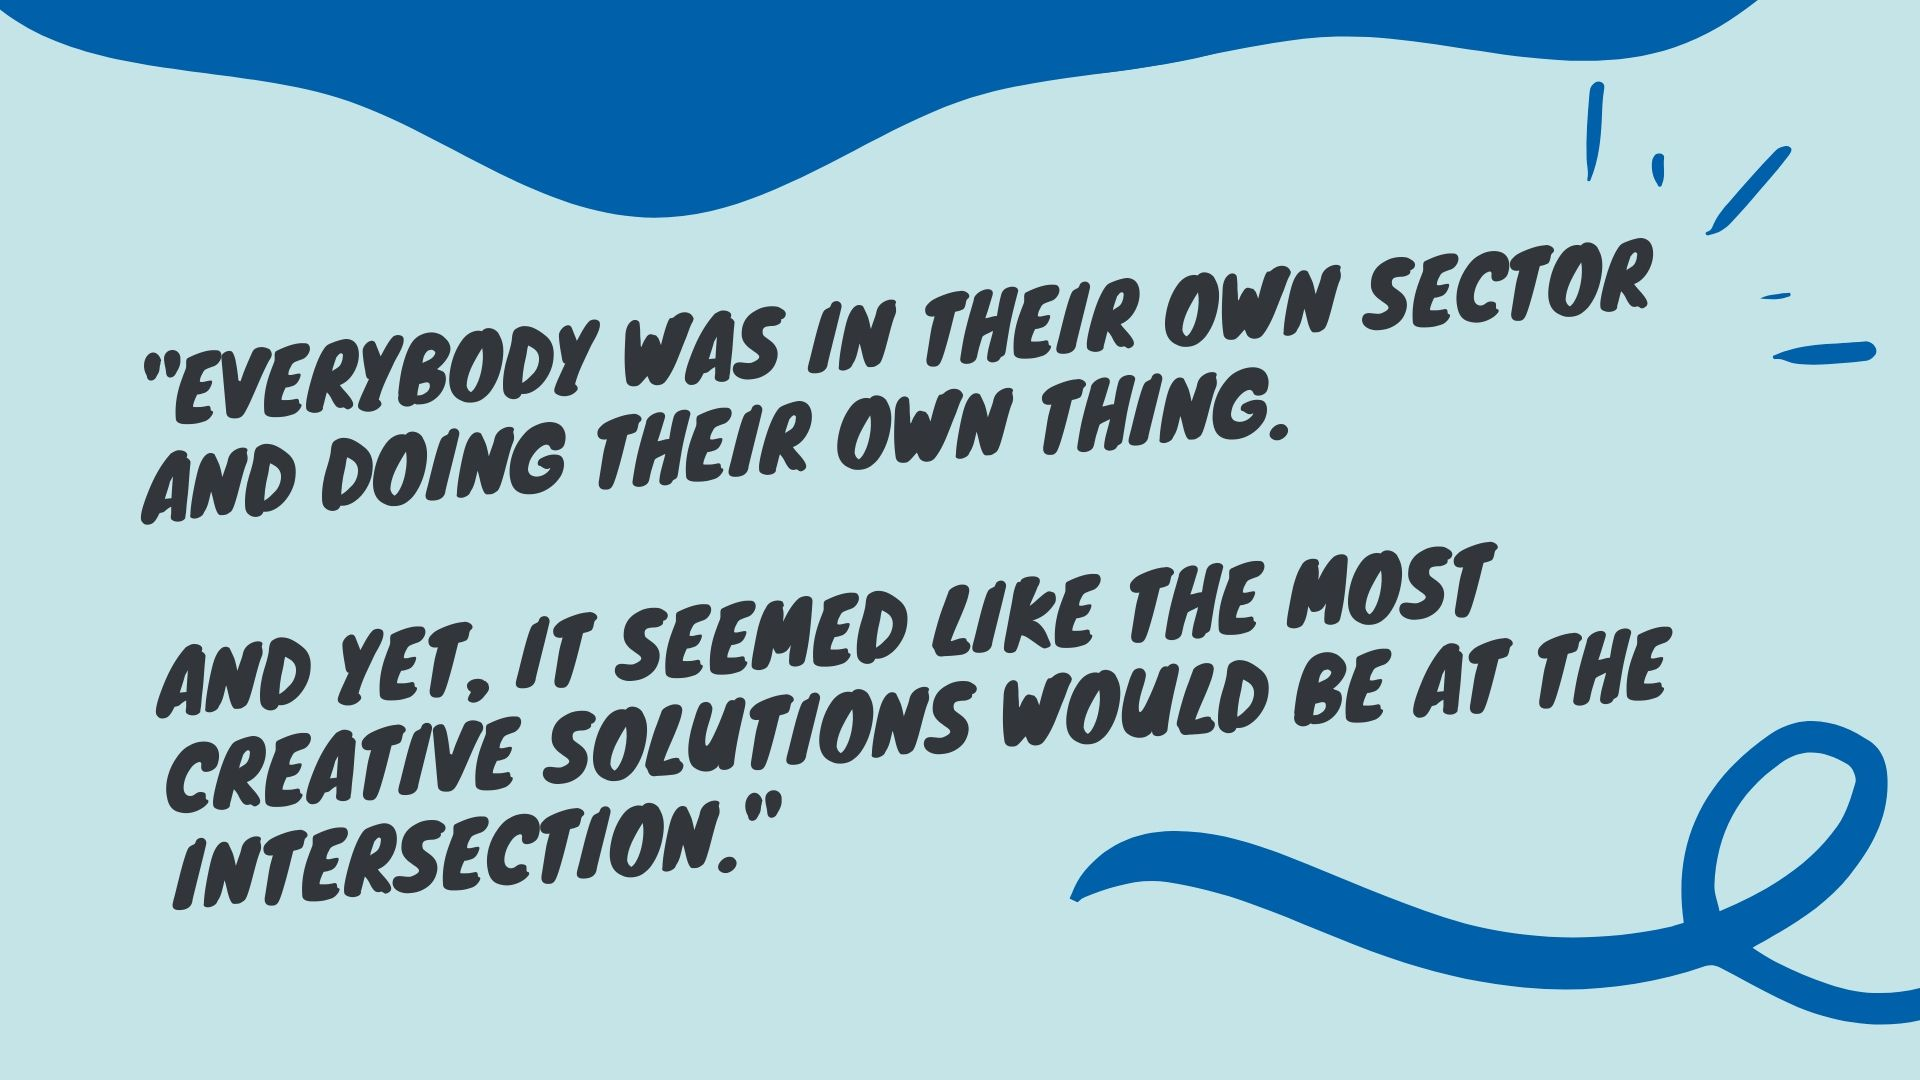 Quote text: Everybody was in their own sector and doing their own thing. And yet, it seemed like the best creative solutions would be at the intersection.